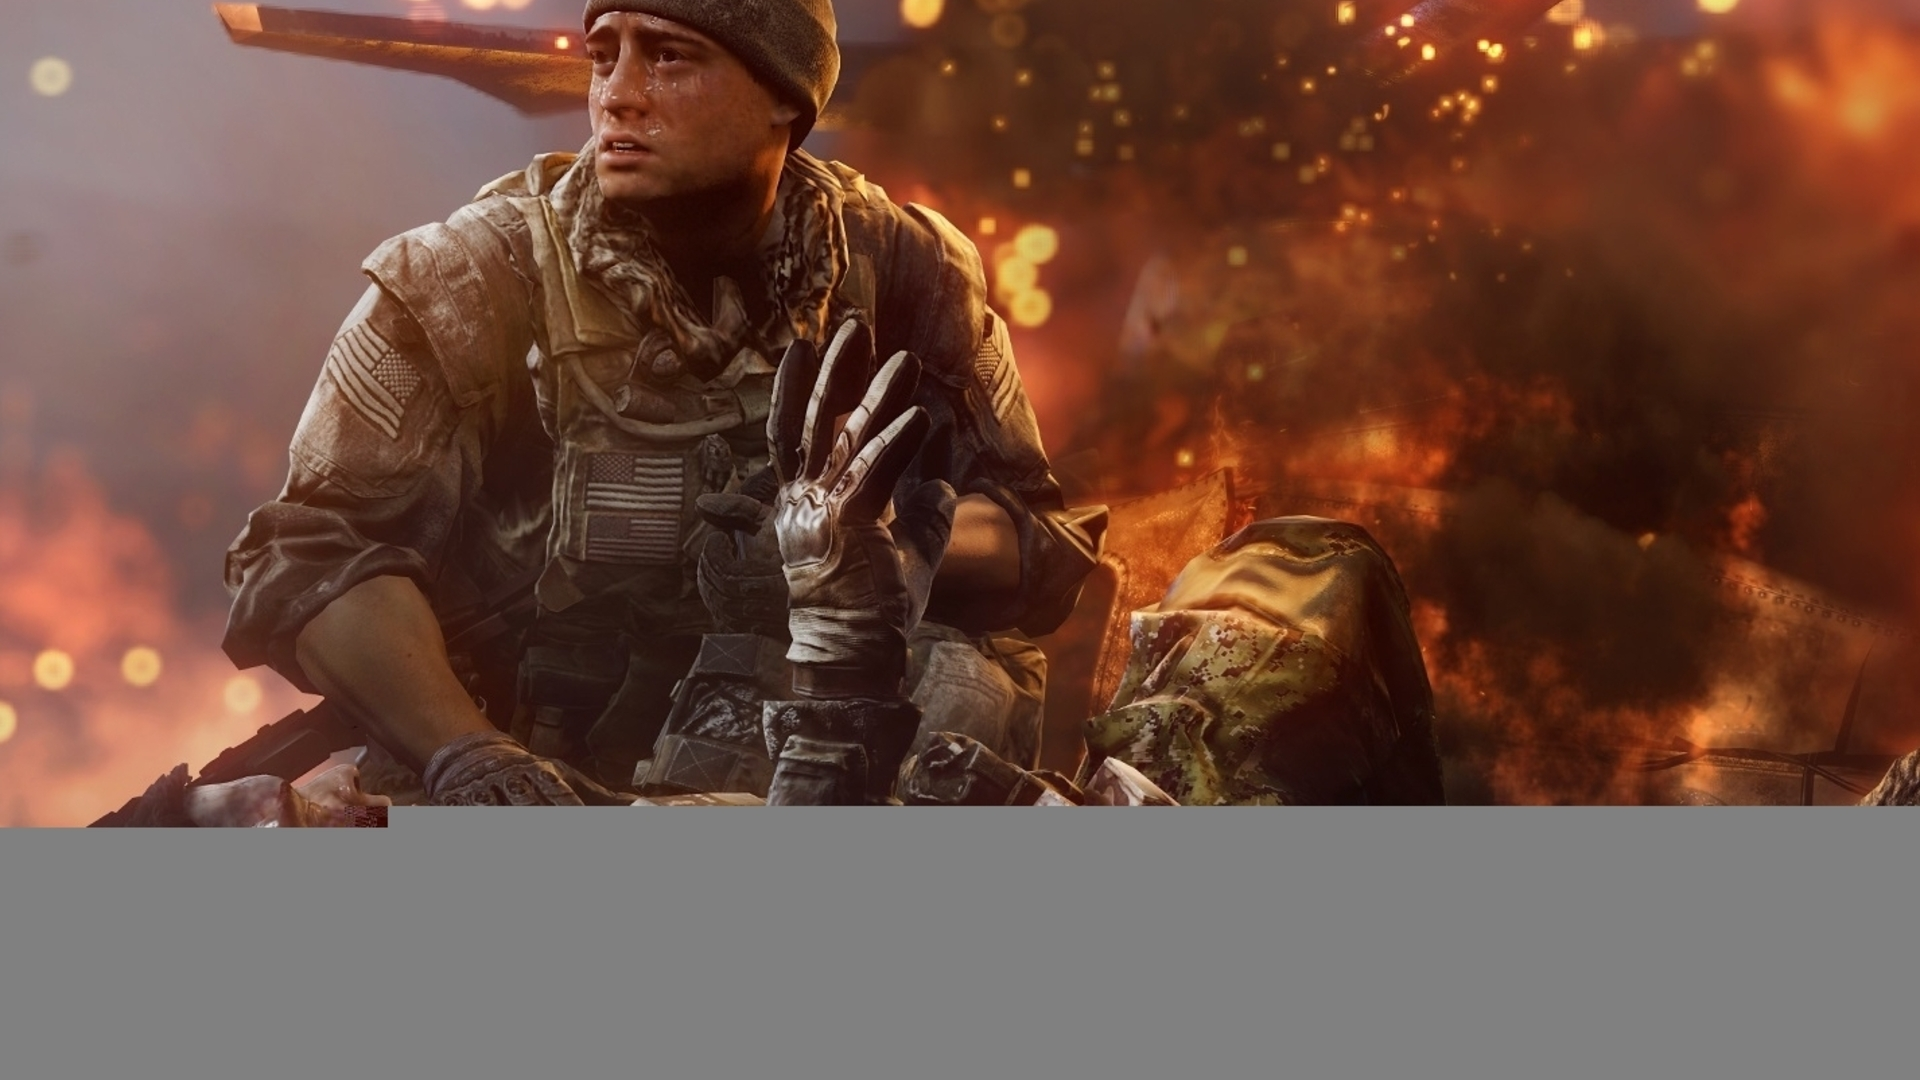 Battlefield 4 to offer double XP for a week